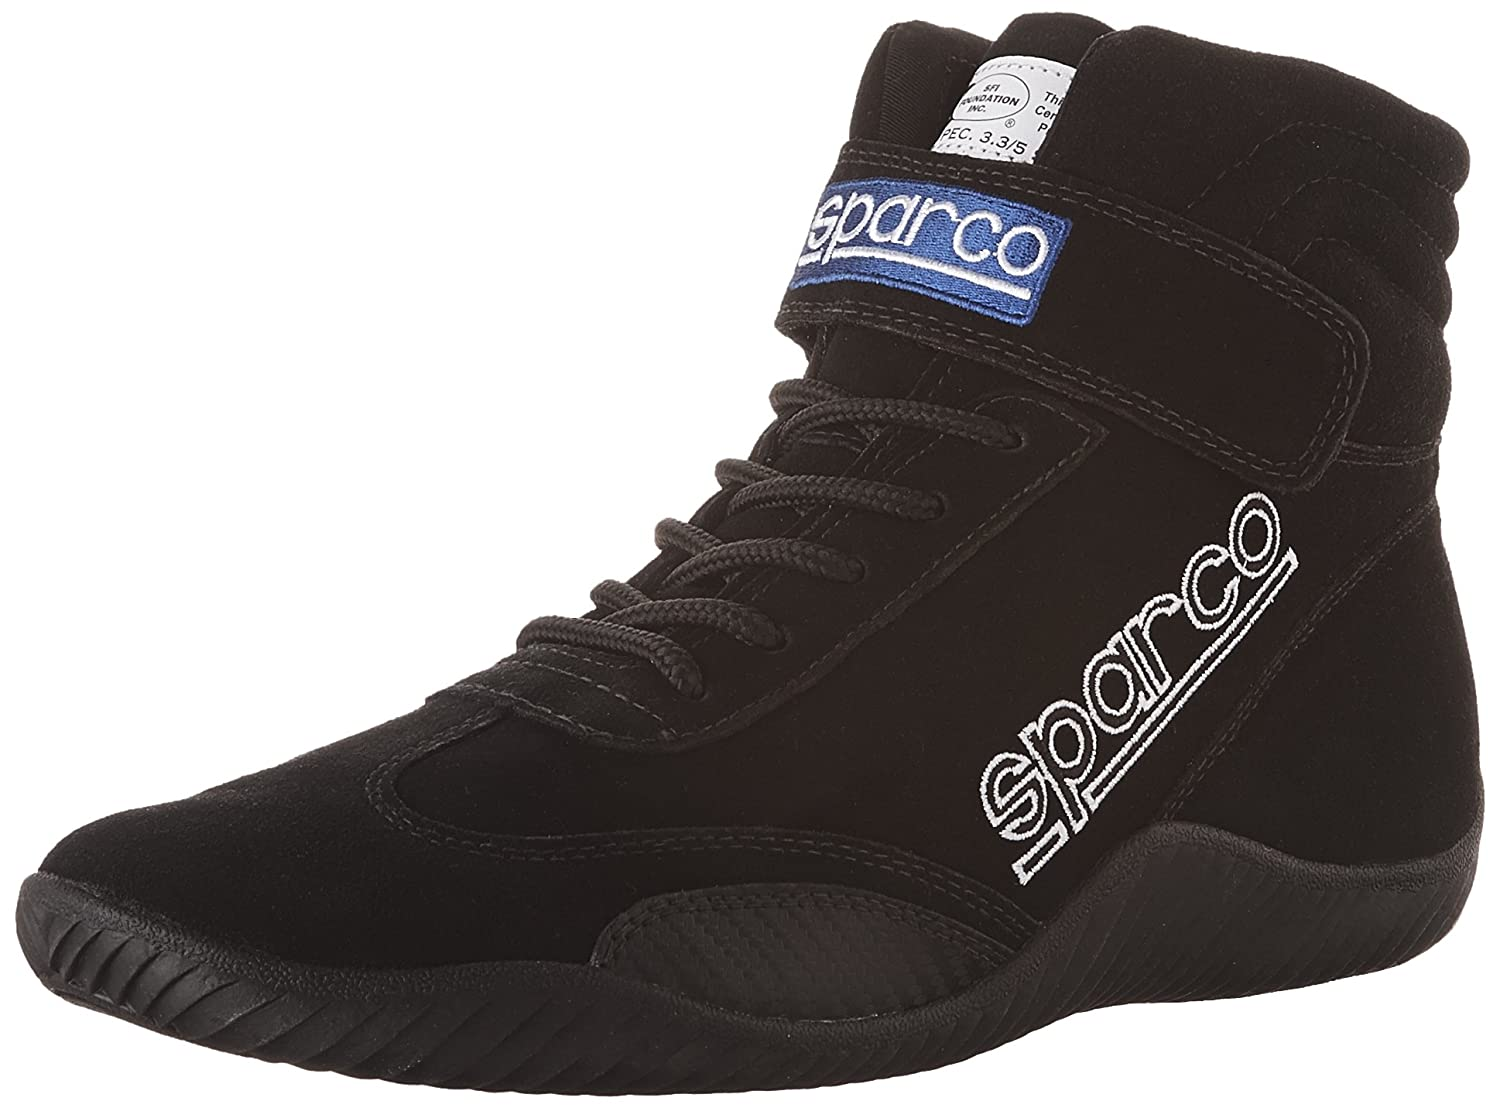 Sparco 00127105N Race Black Driving Image 1